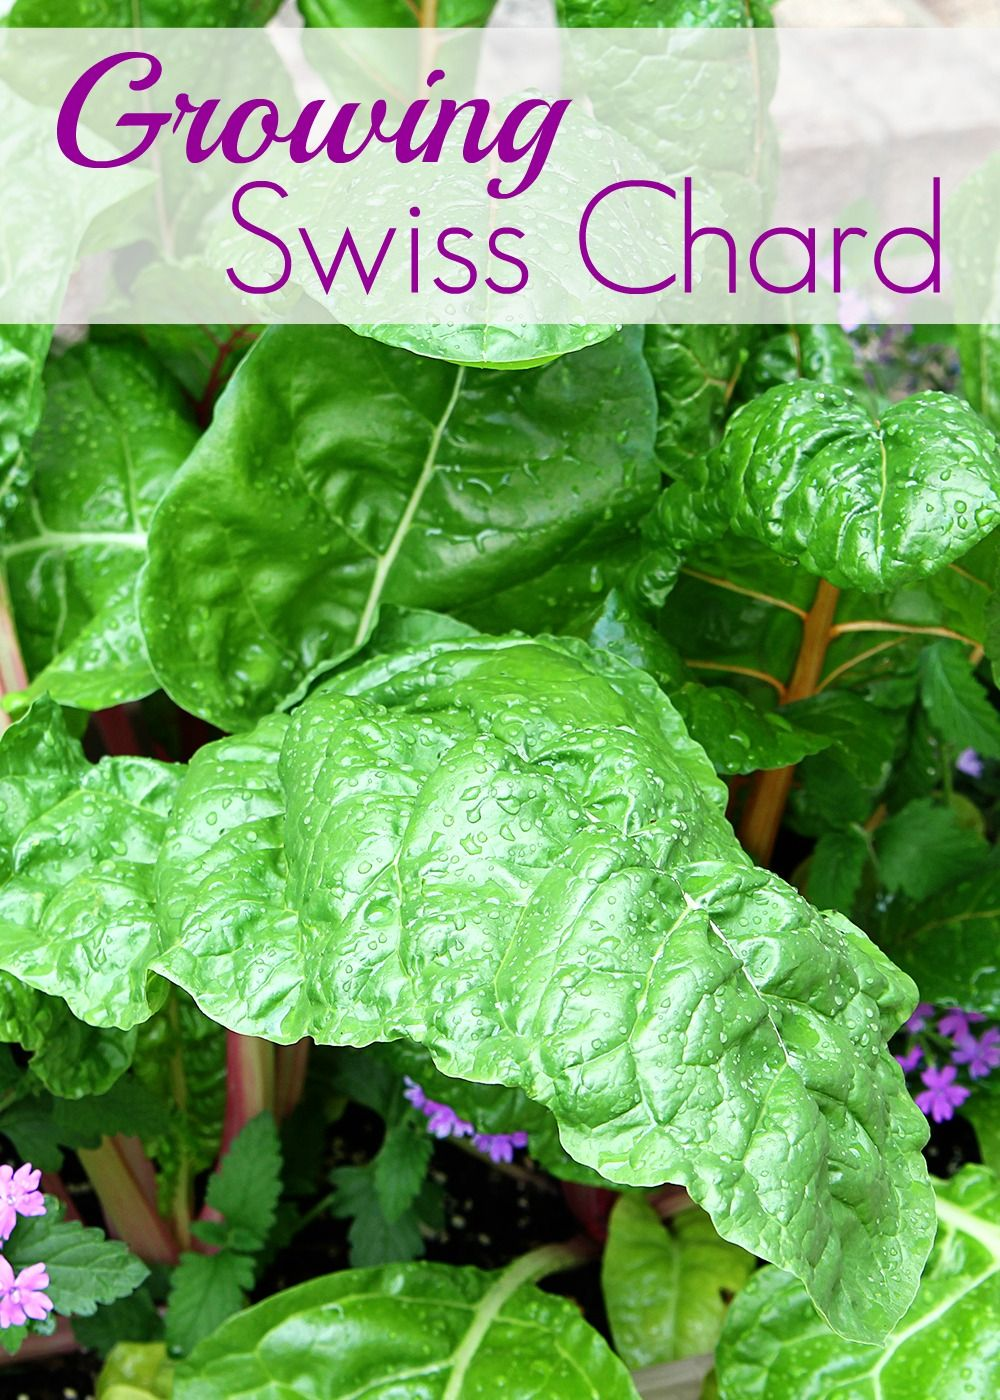 containing my enthusiam for swiss chard plants gardens and